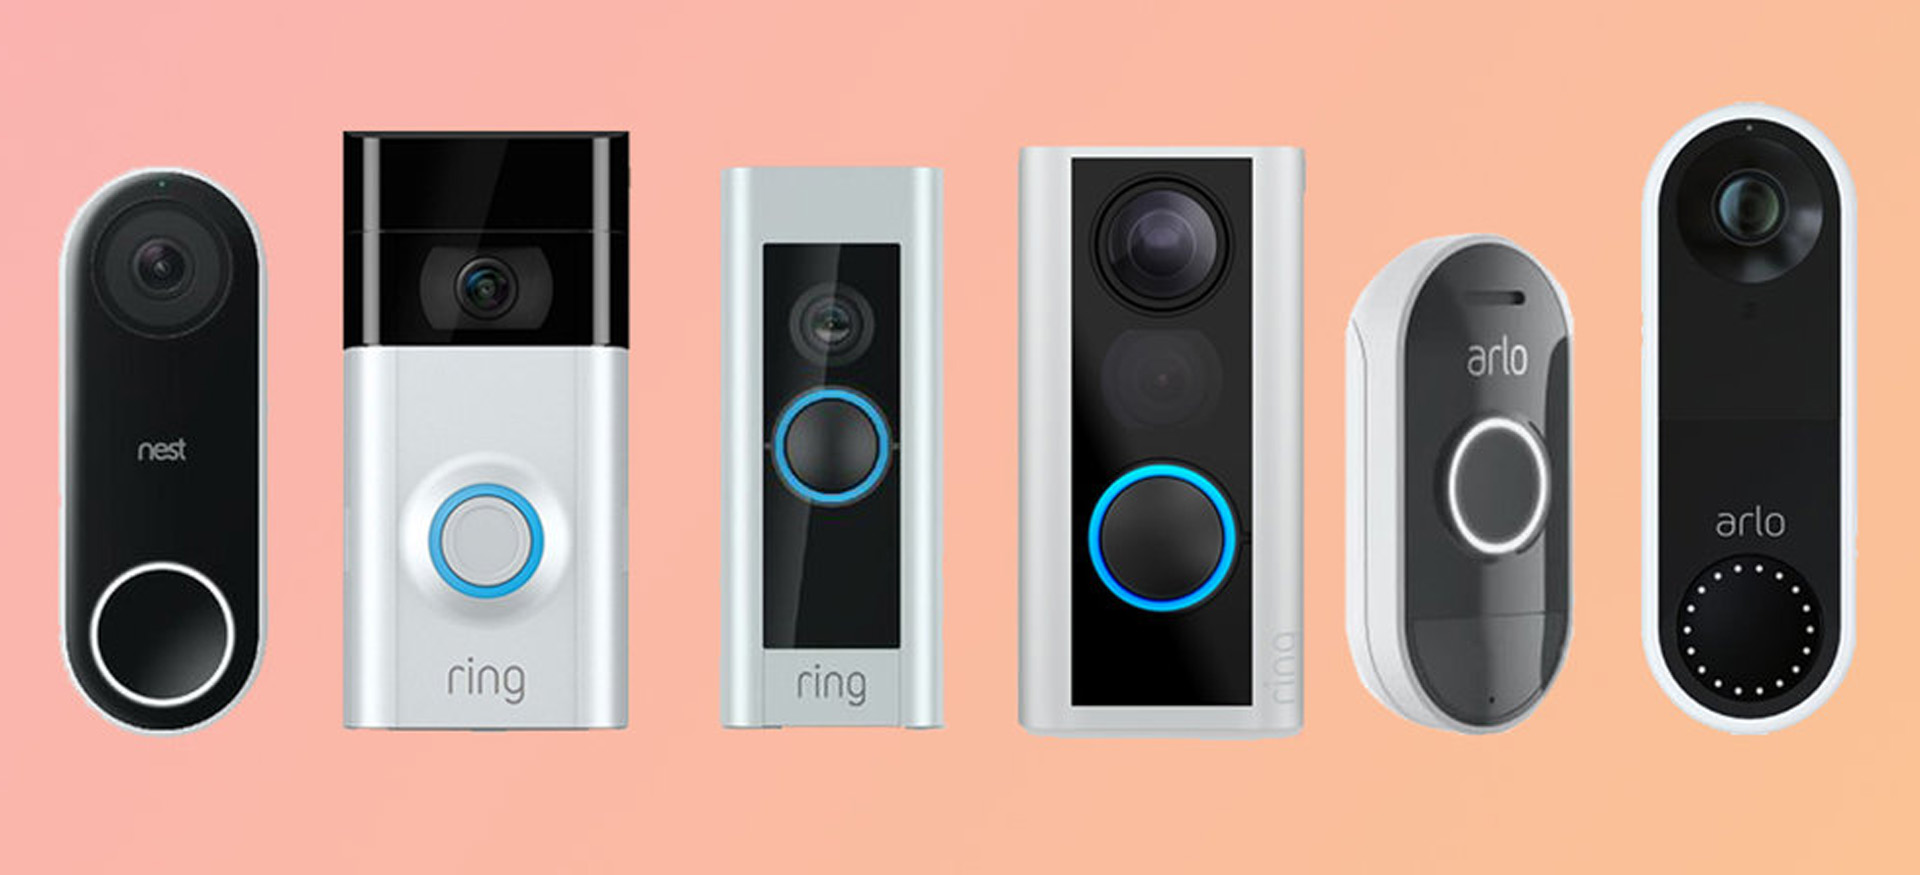 Can Video Doorbells Really Replace a Hard Wired CCTV System